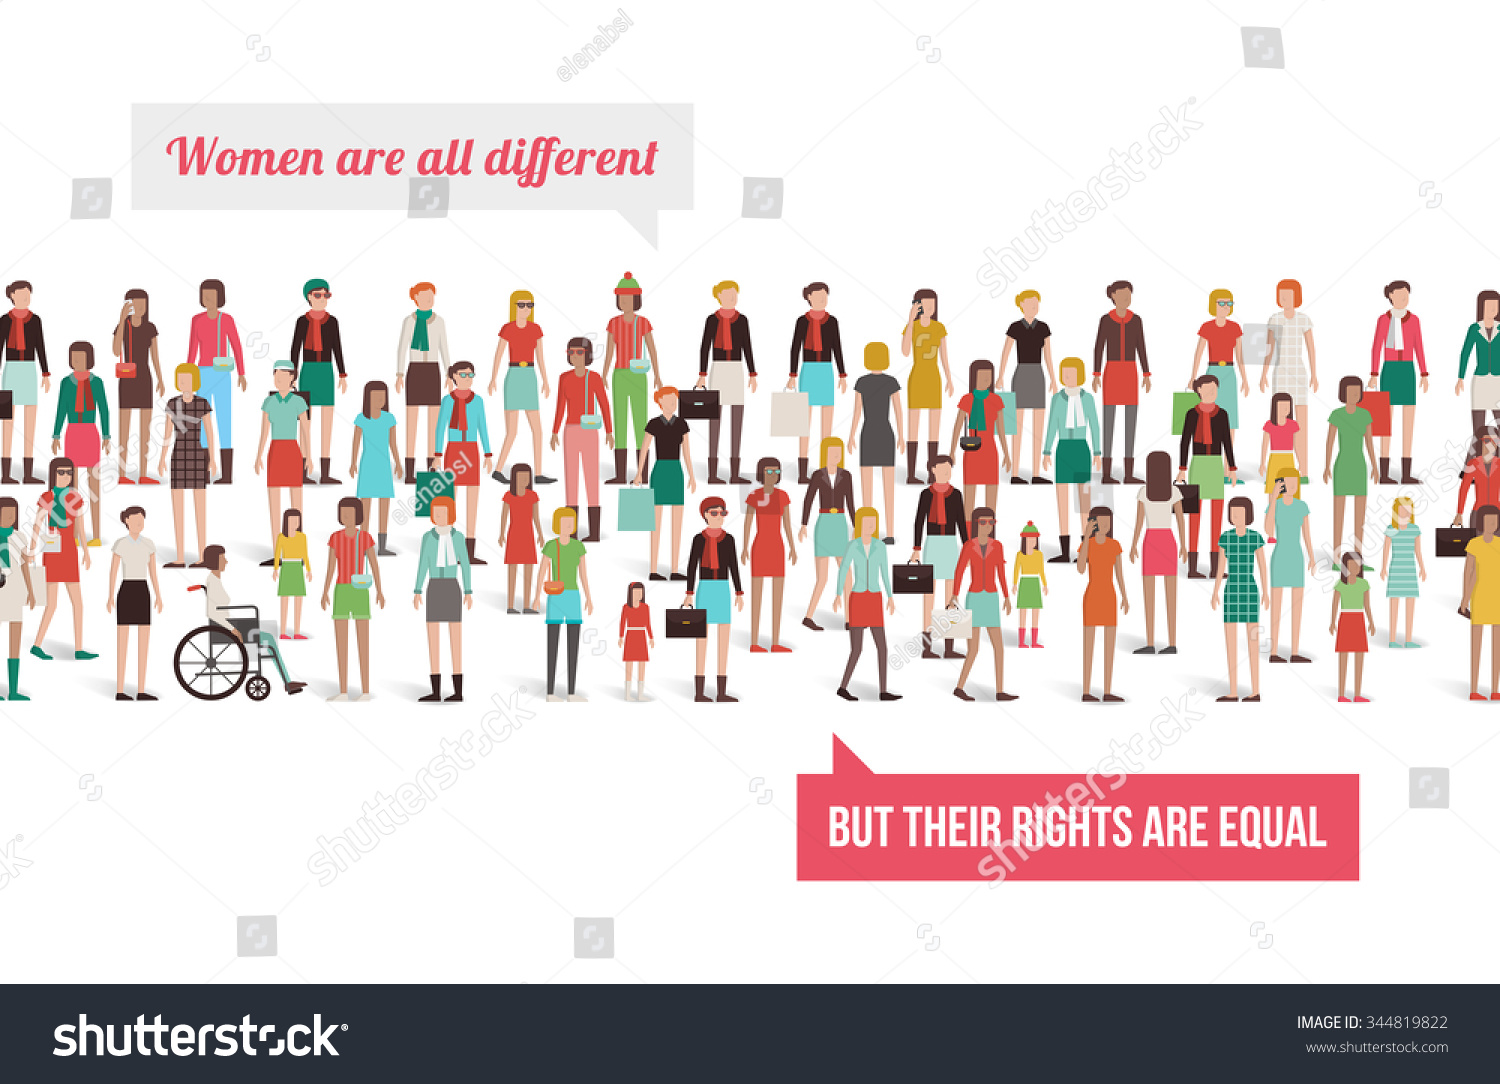 role of education in women empowerment essay